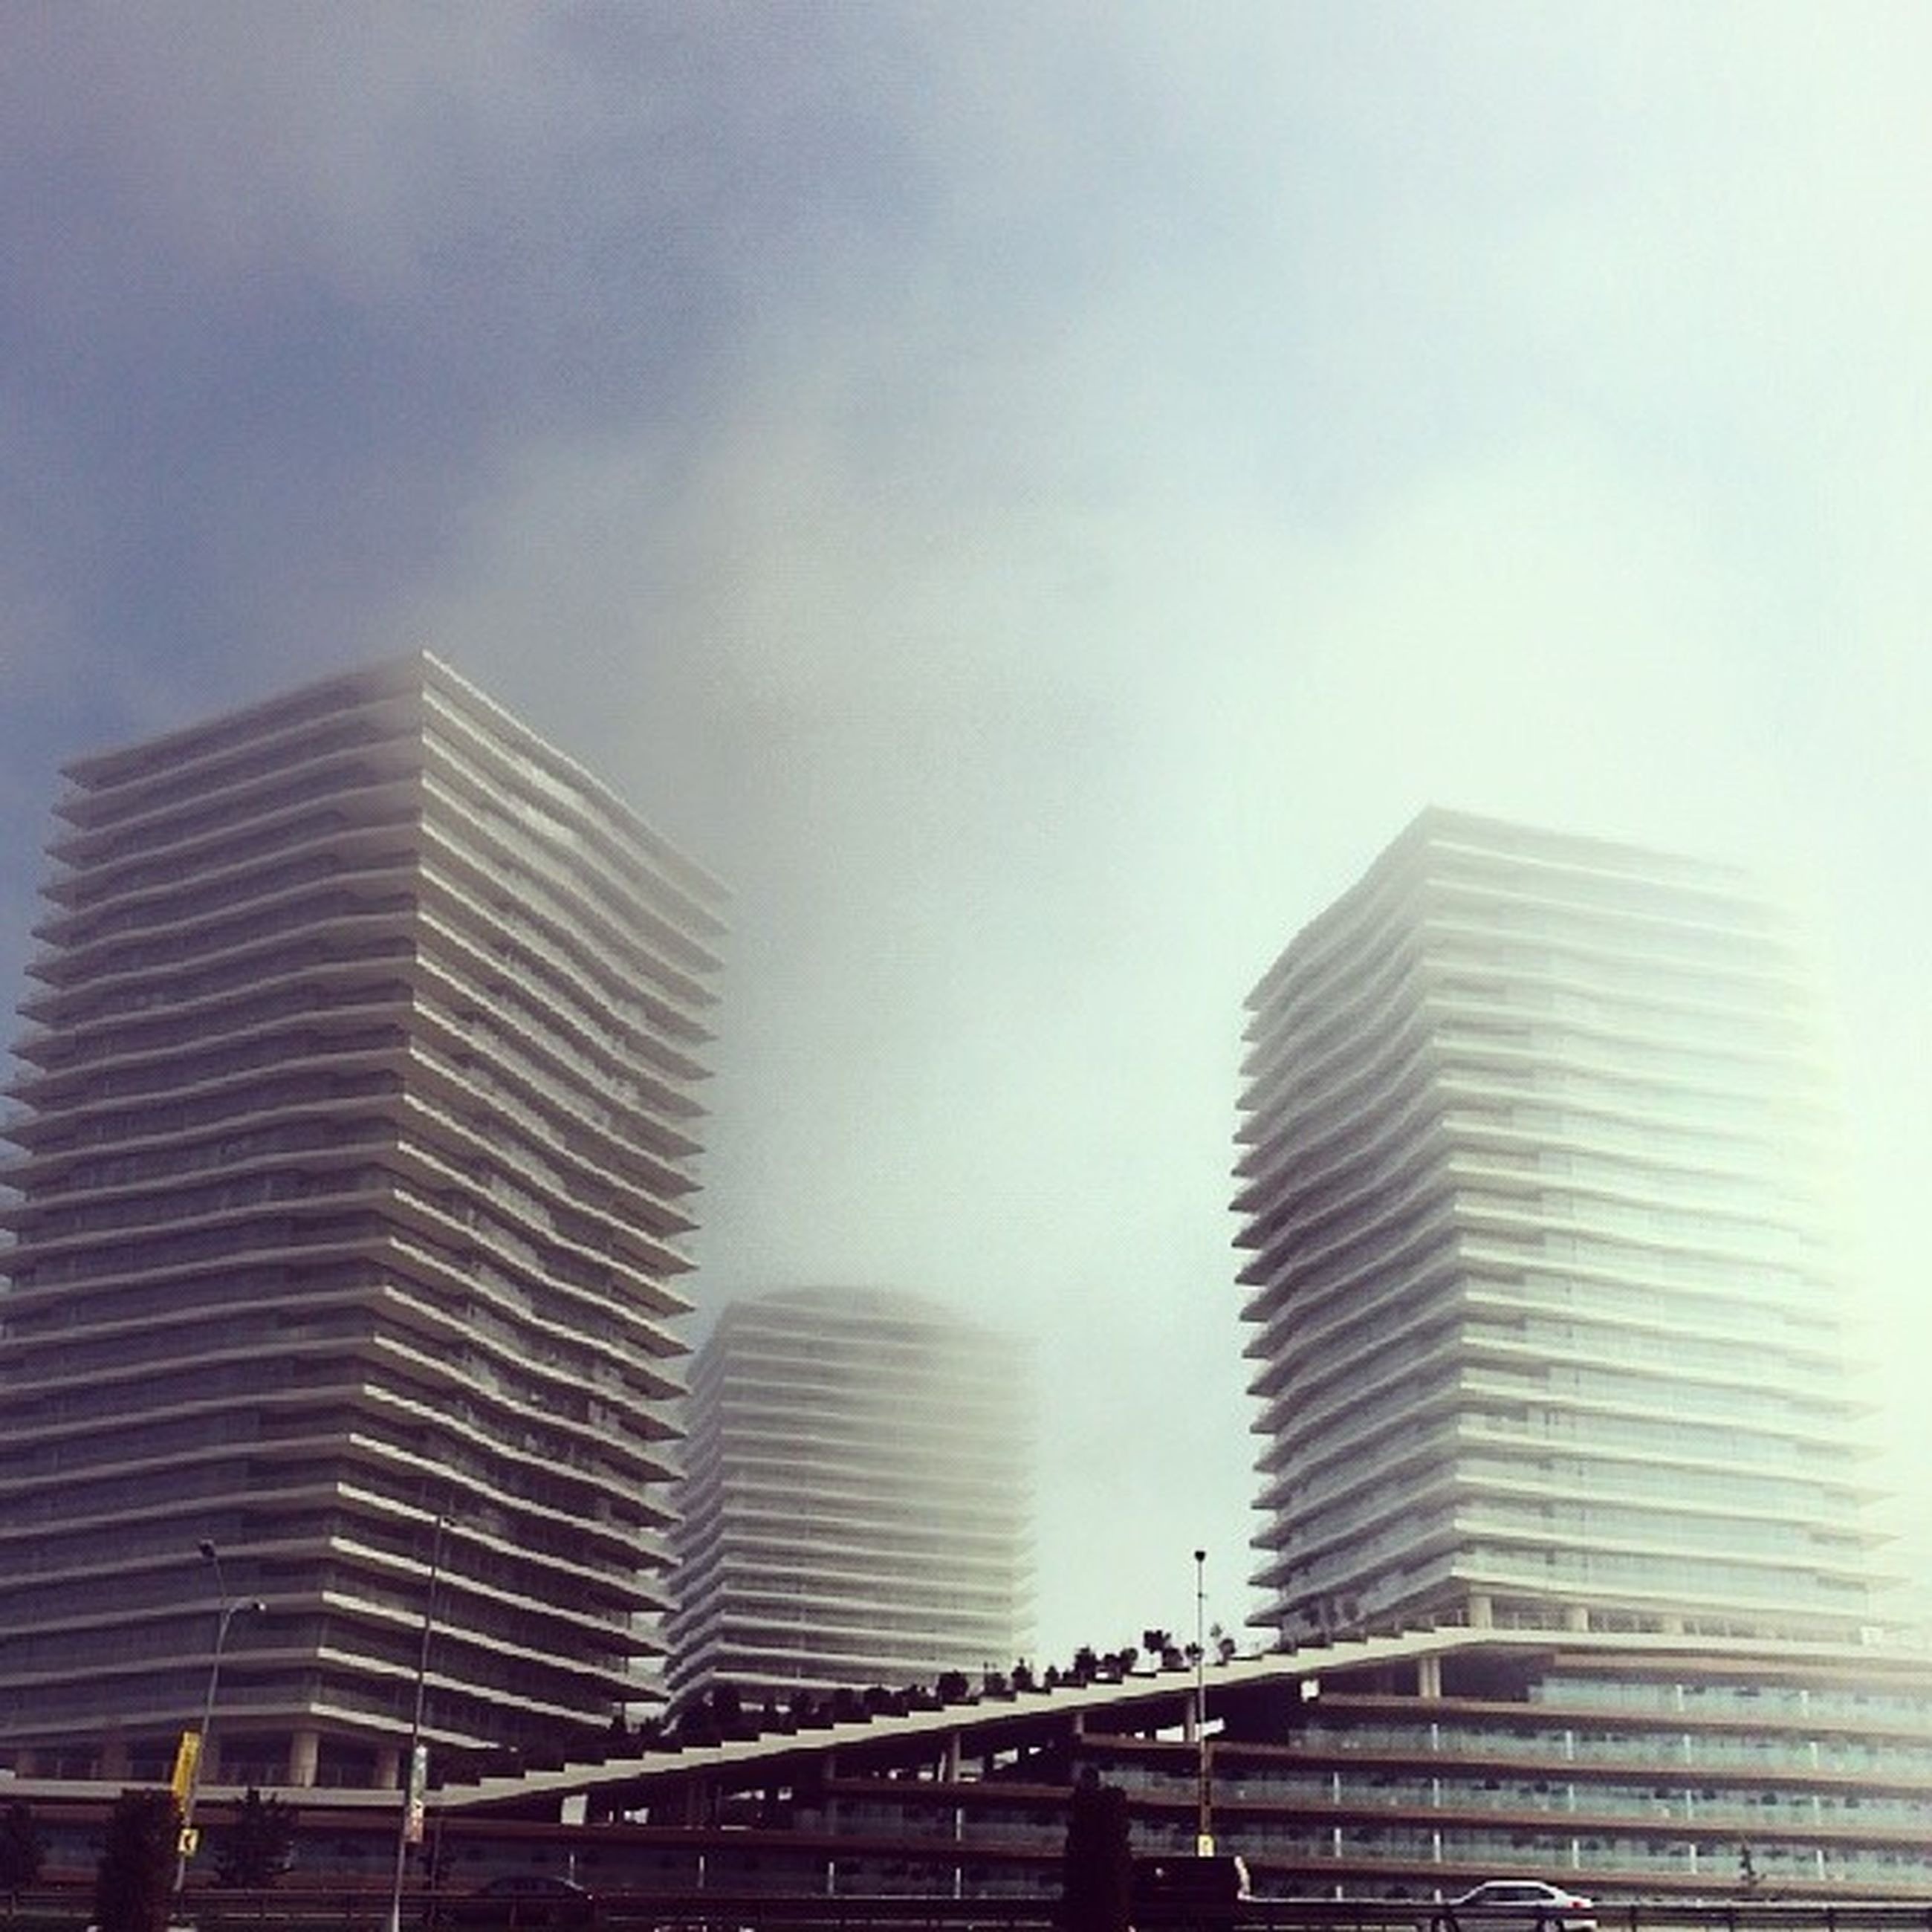 architecture, built structure, building exterior, modern, low angle view, skyscraper, office building, city, glass - material, sky, tall - high, building, tower, day, reflection, outdoors, city life, no people, development, clear sky